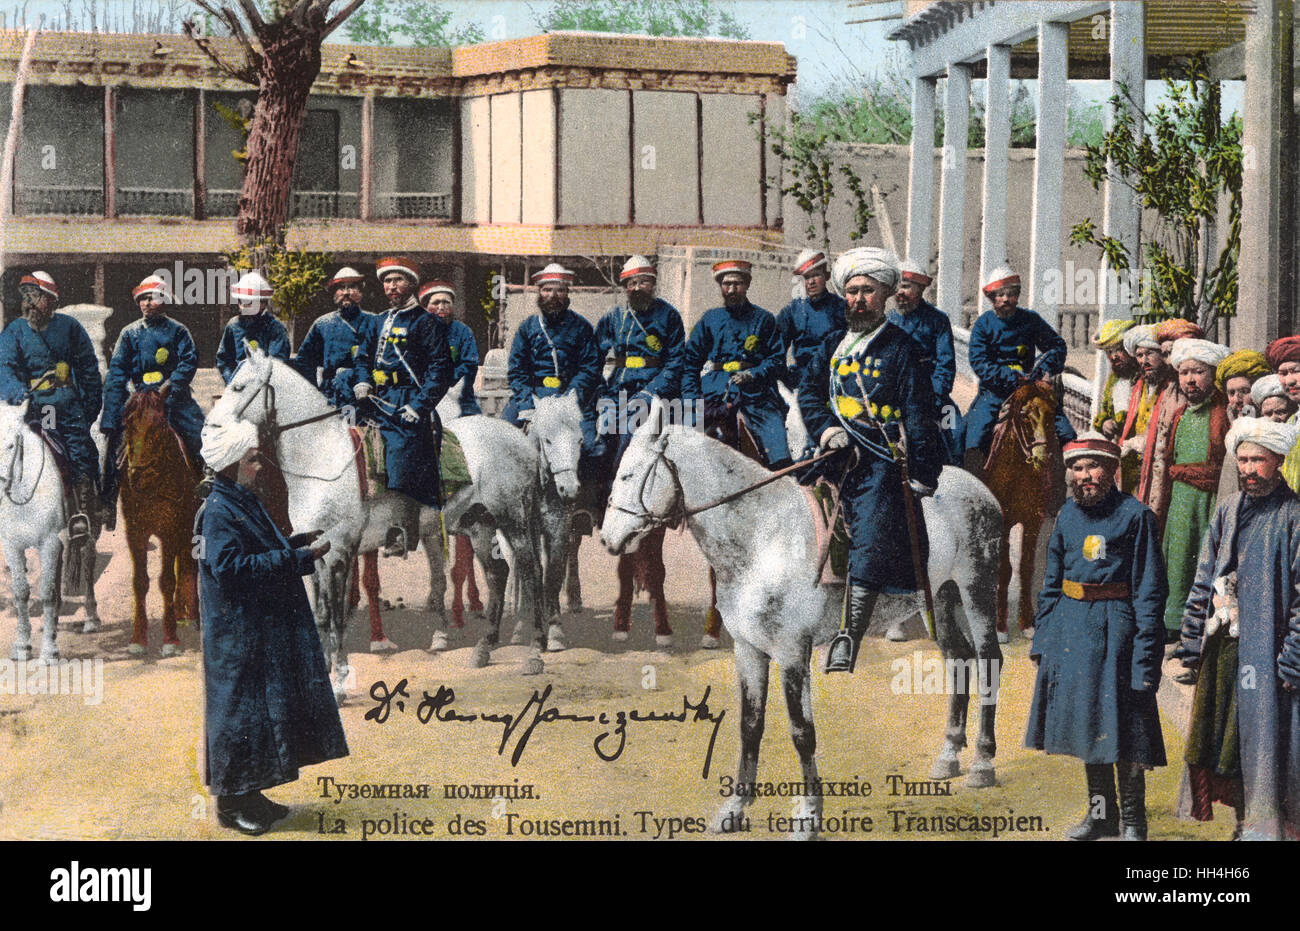 Turkmenistan - Local Mounted Police. - Stock Image